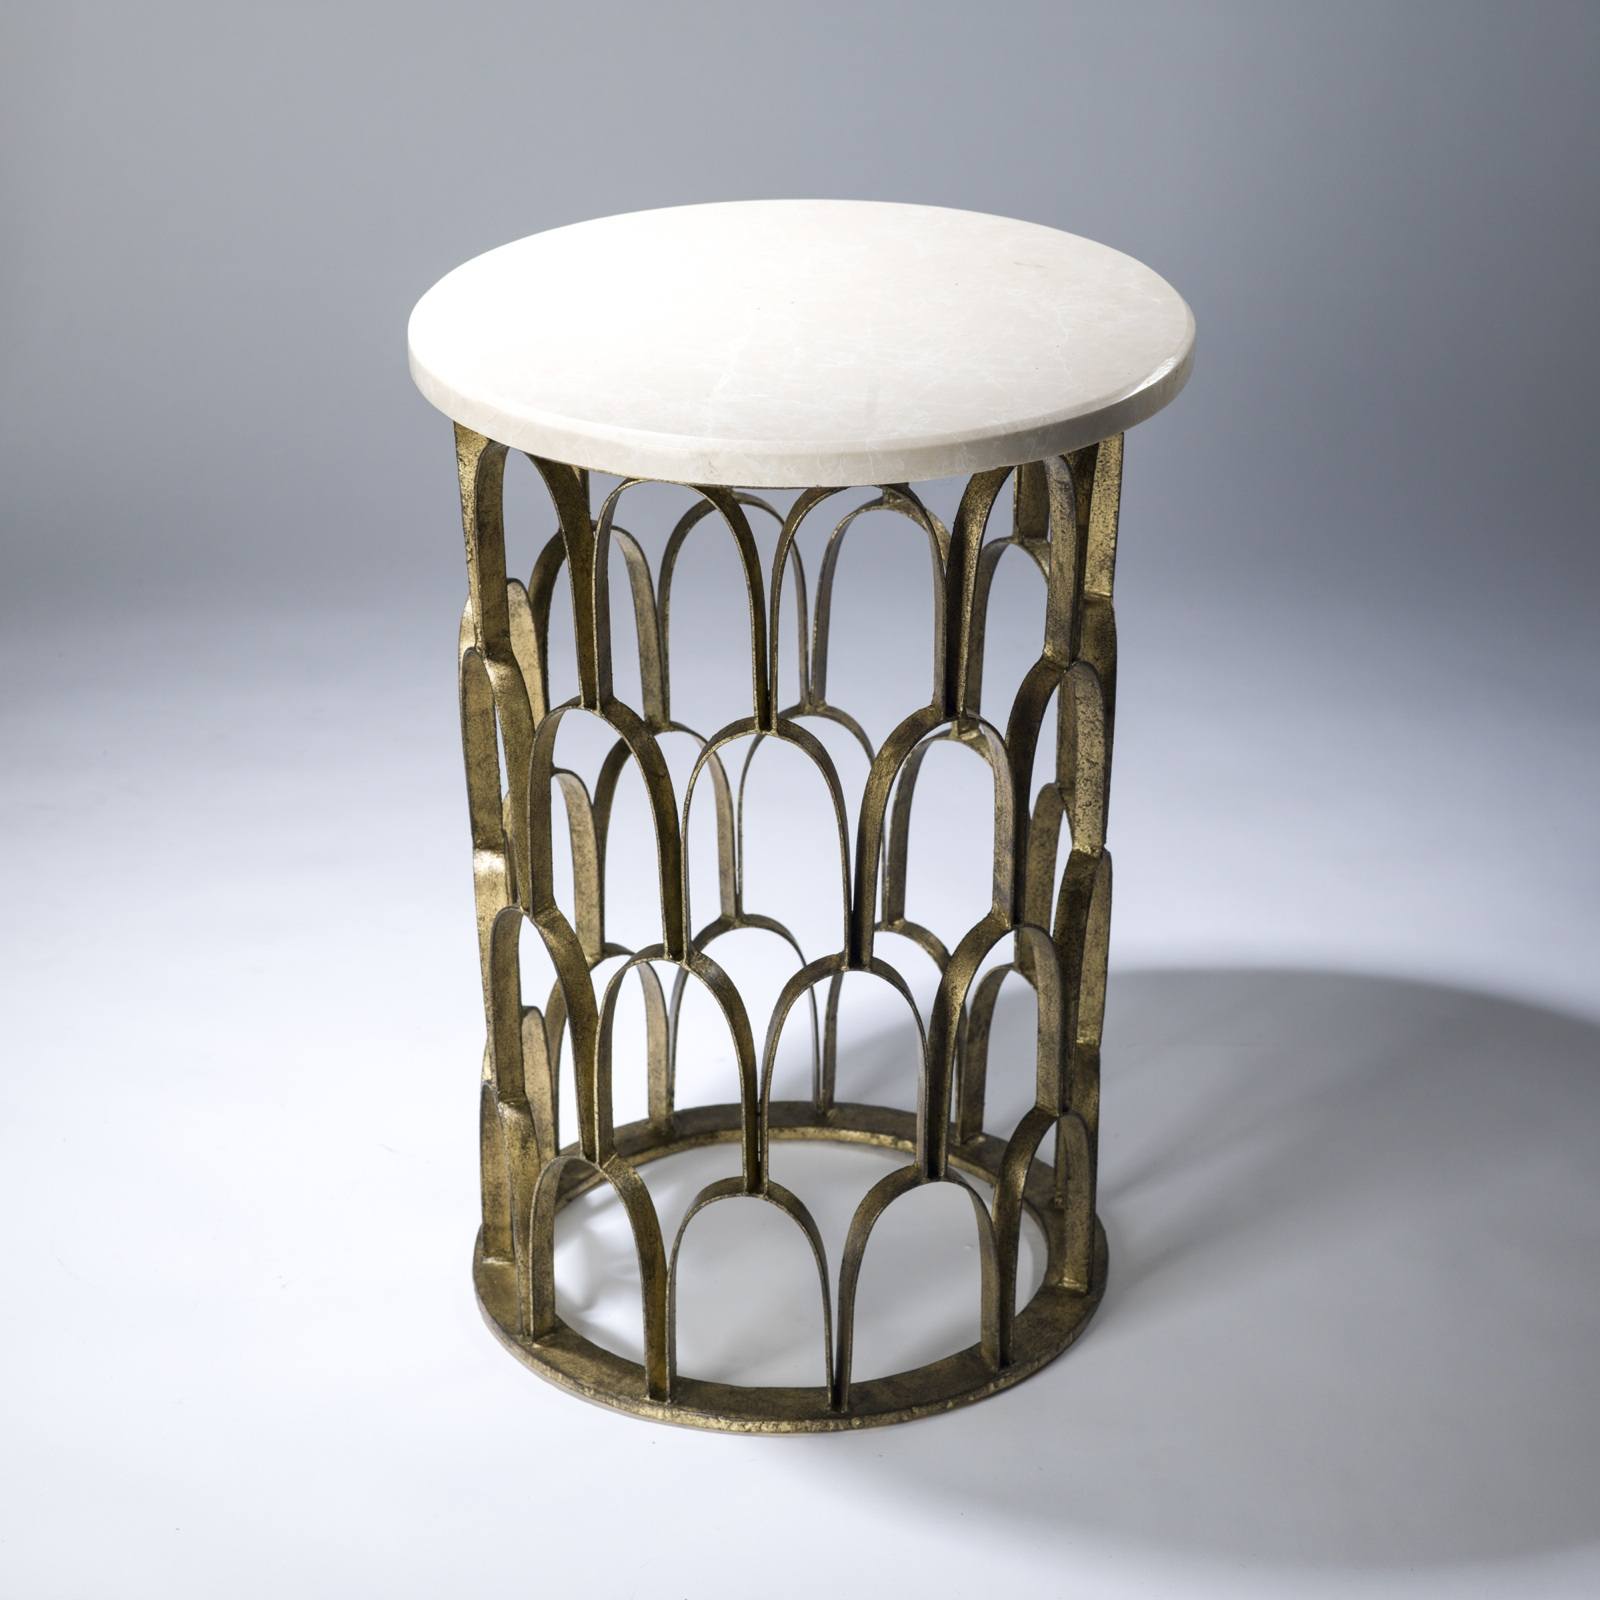 Lovely Round Fish Scale Side Table In Distressed Gold Leaf Finish And Marble Top  (T3635)